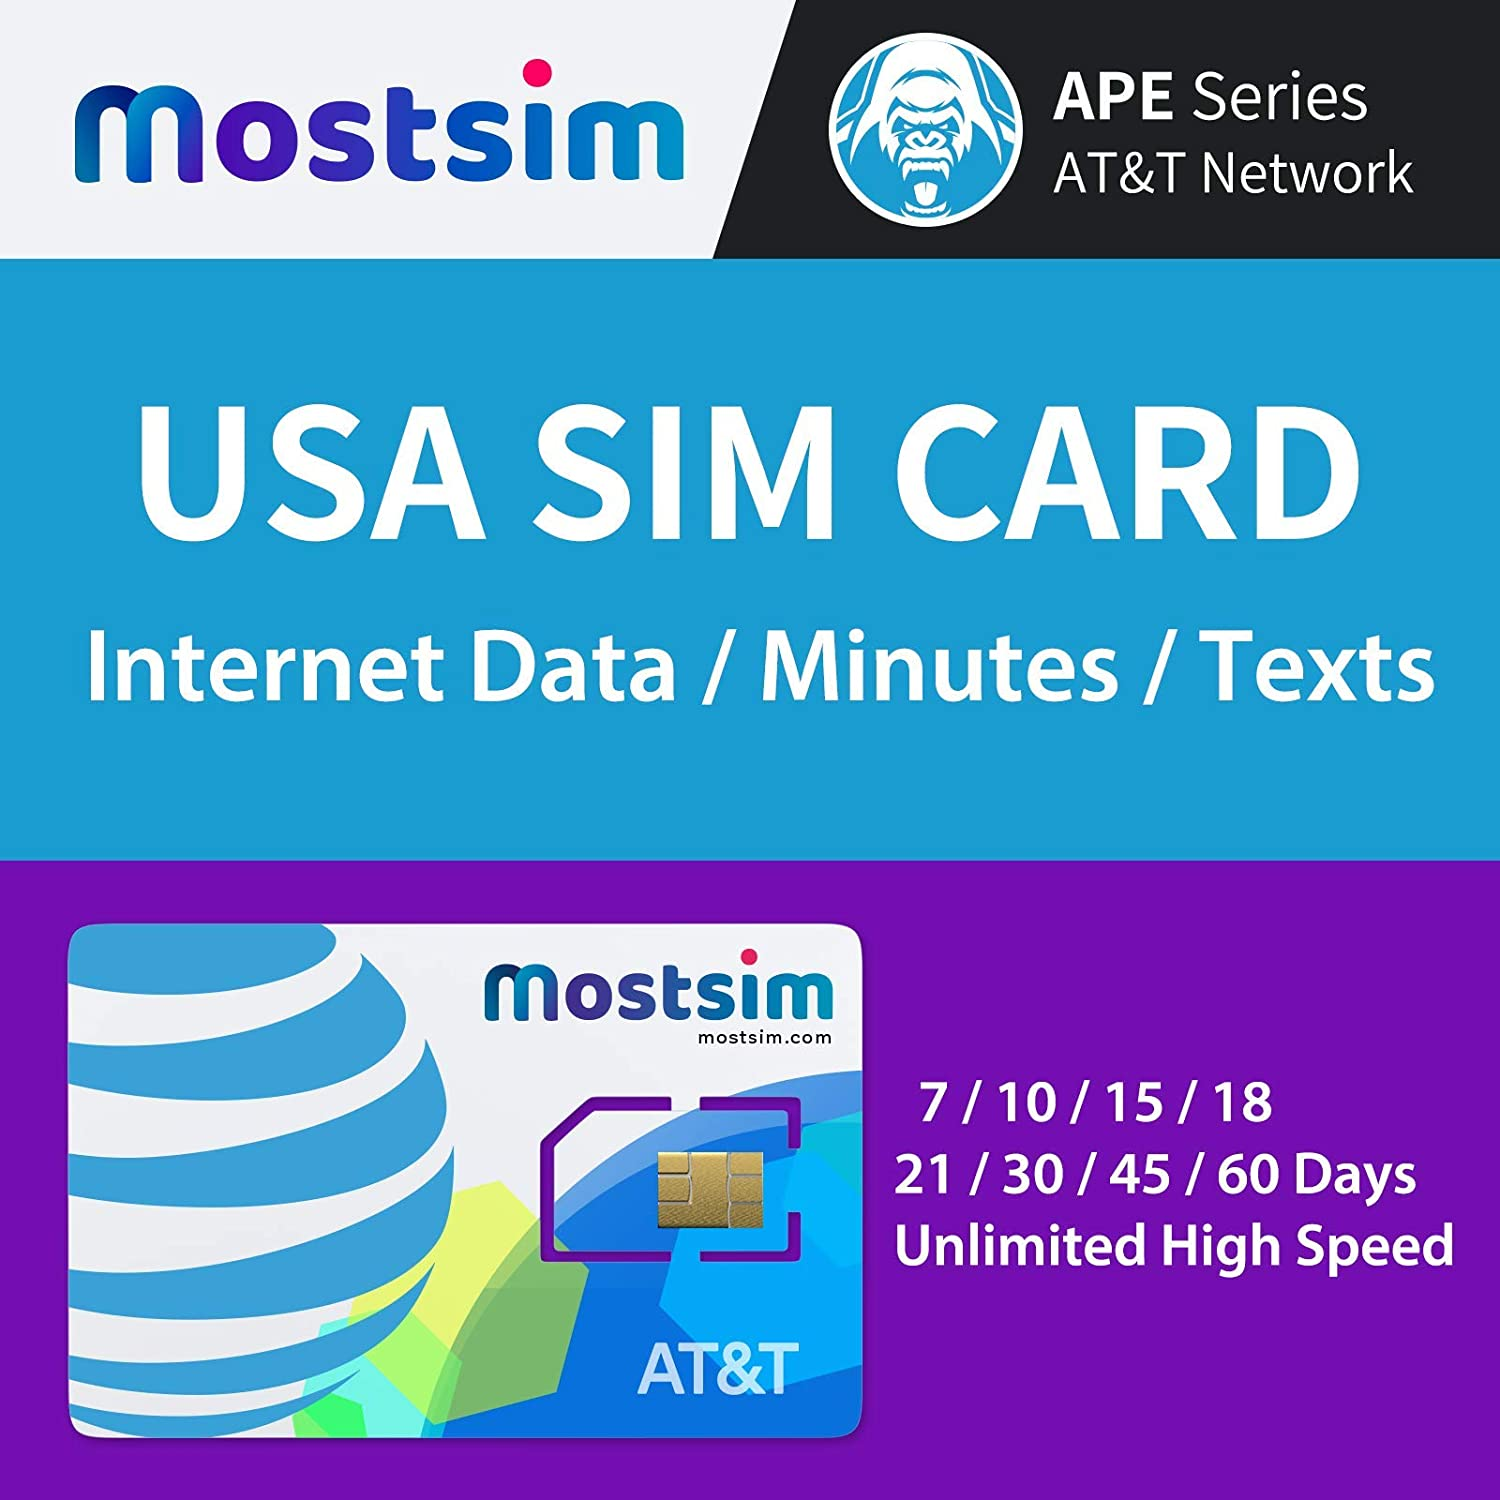 Unlimited High Speed Data//Calls//Texts MOST SIM AT/&T USA SIM Card 21 Days AT/&T Network for USA